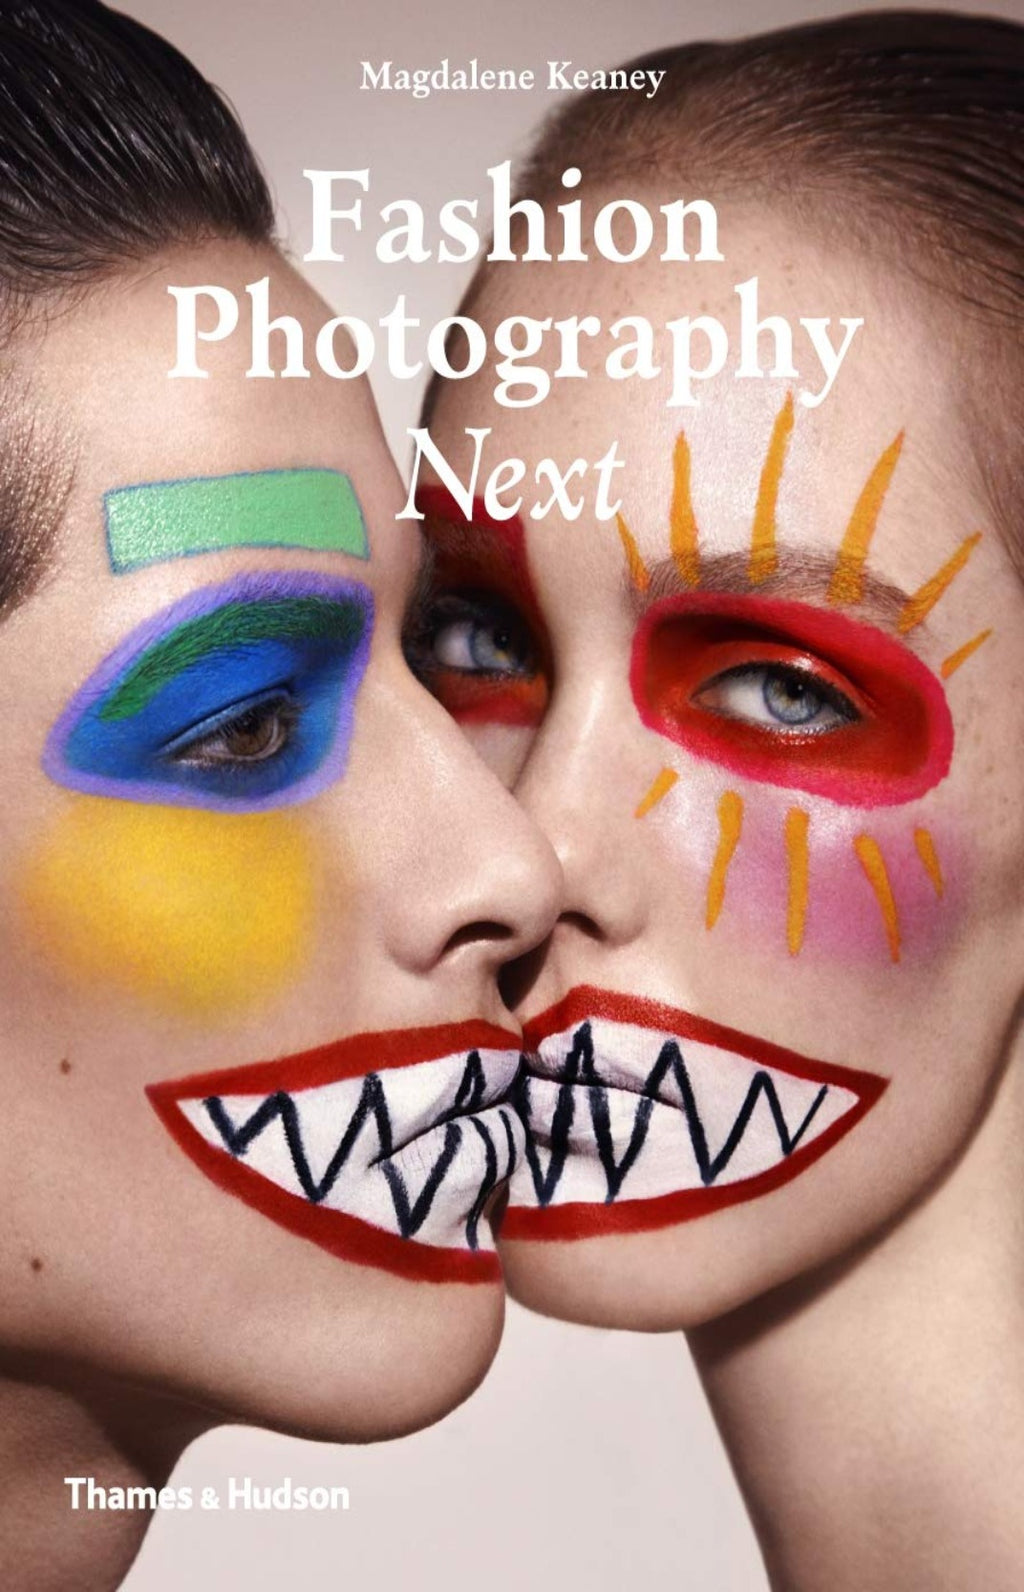 Fashion Photography Next